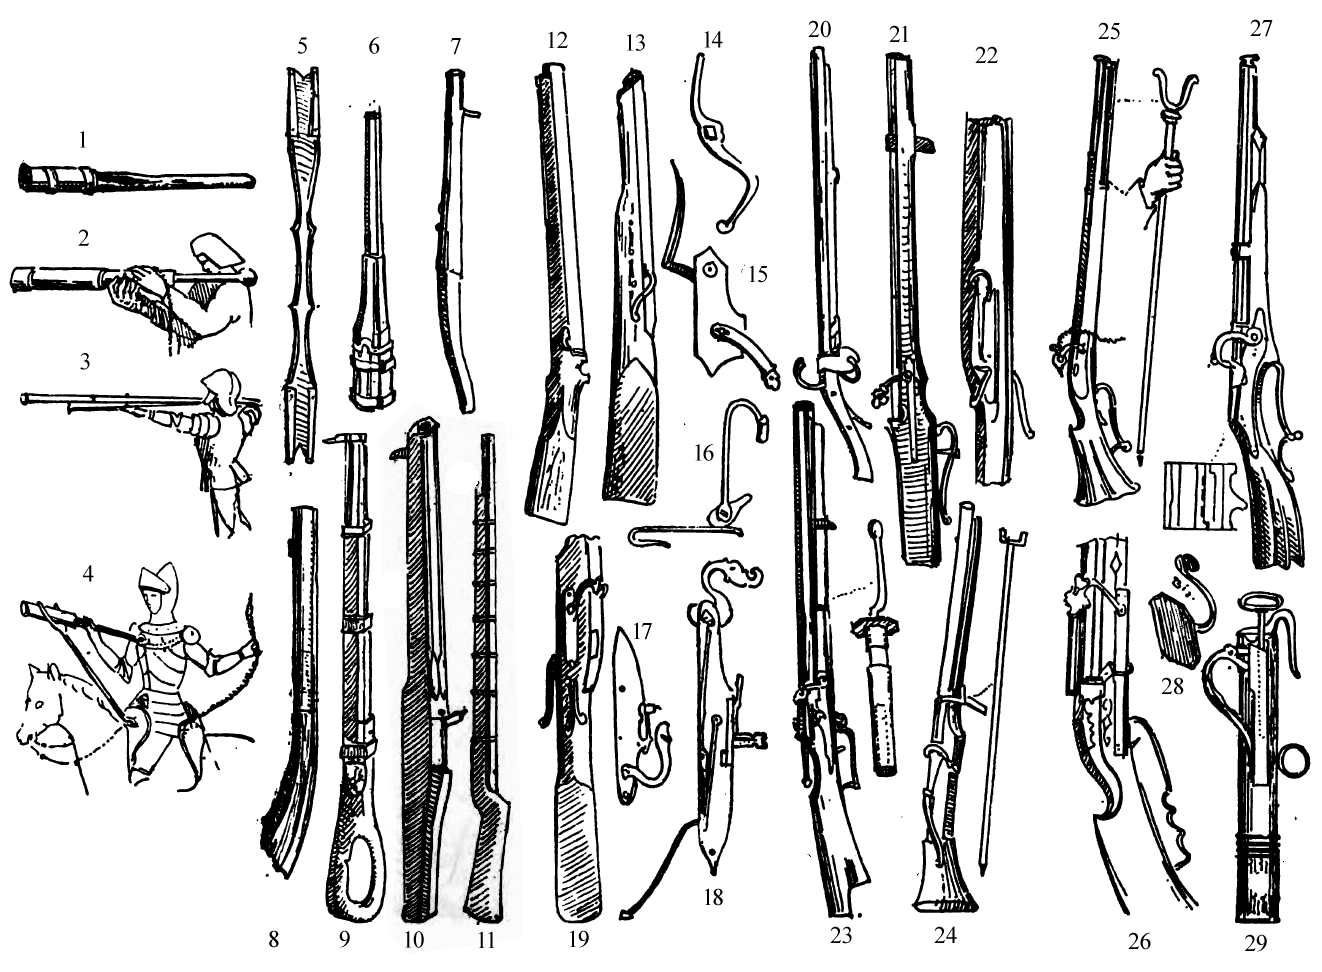 Hand fire-arms